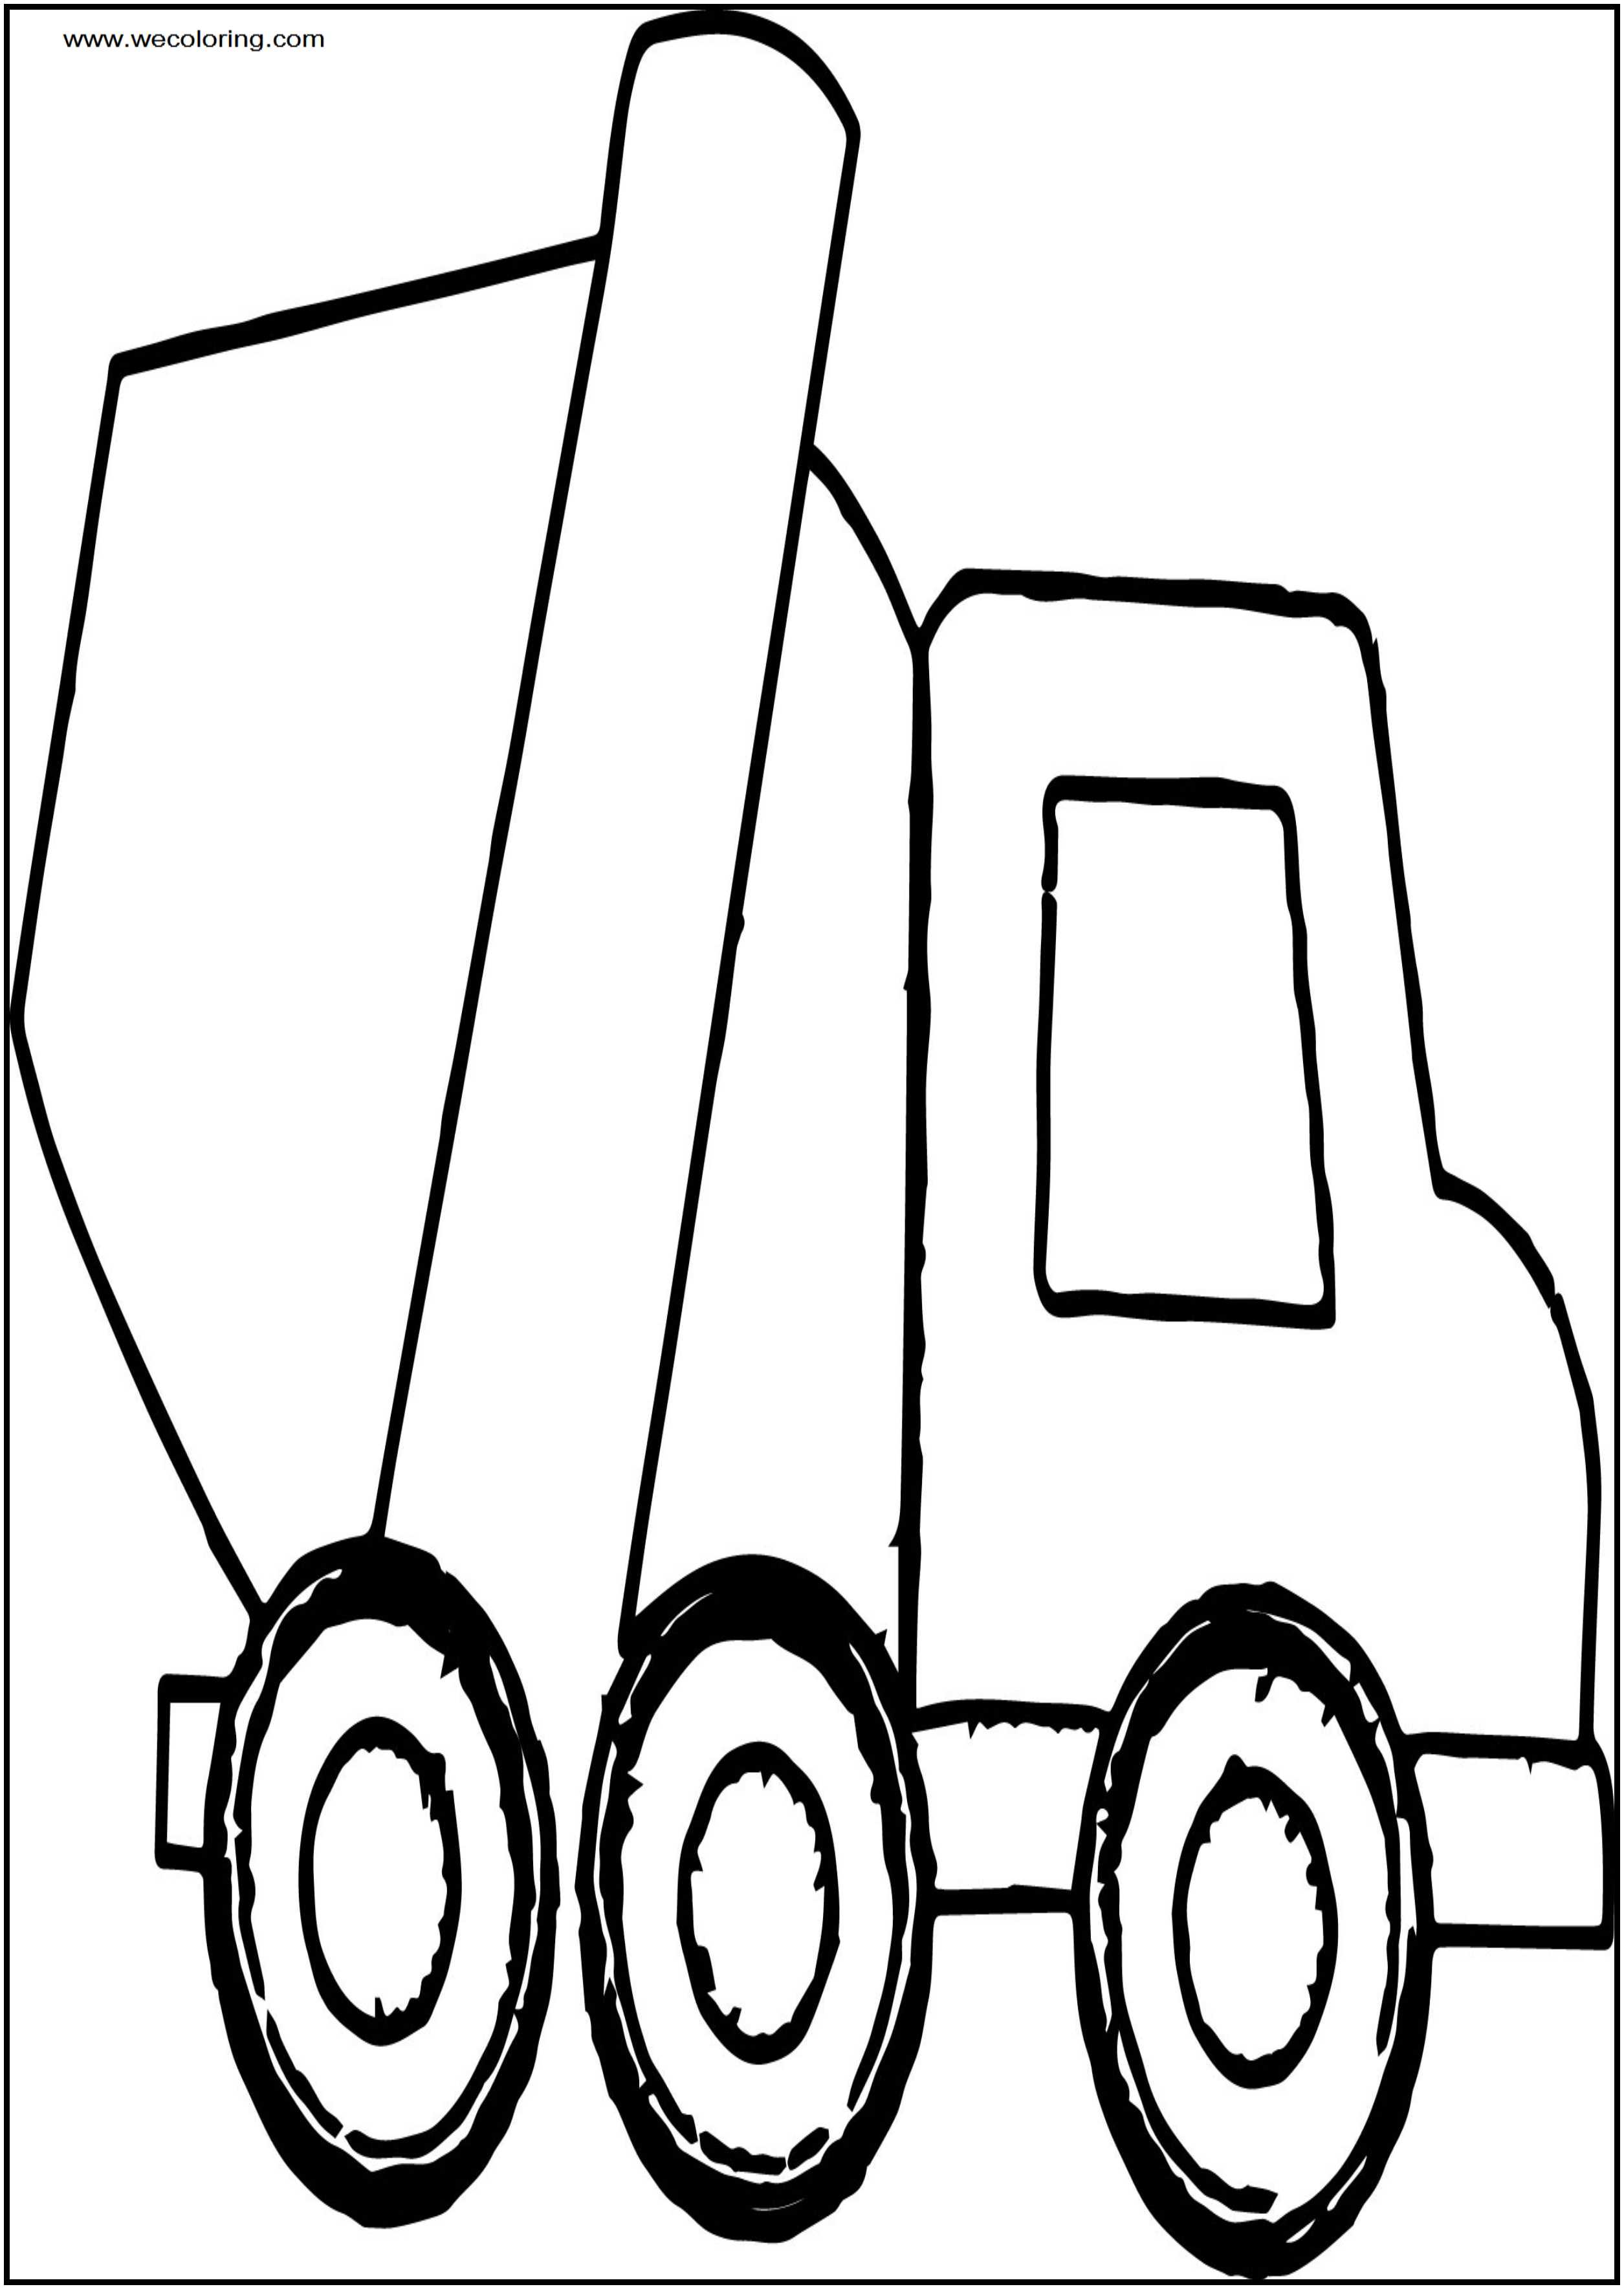 Cement Truck Smaller Free A4 Printable Coloring Page